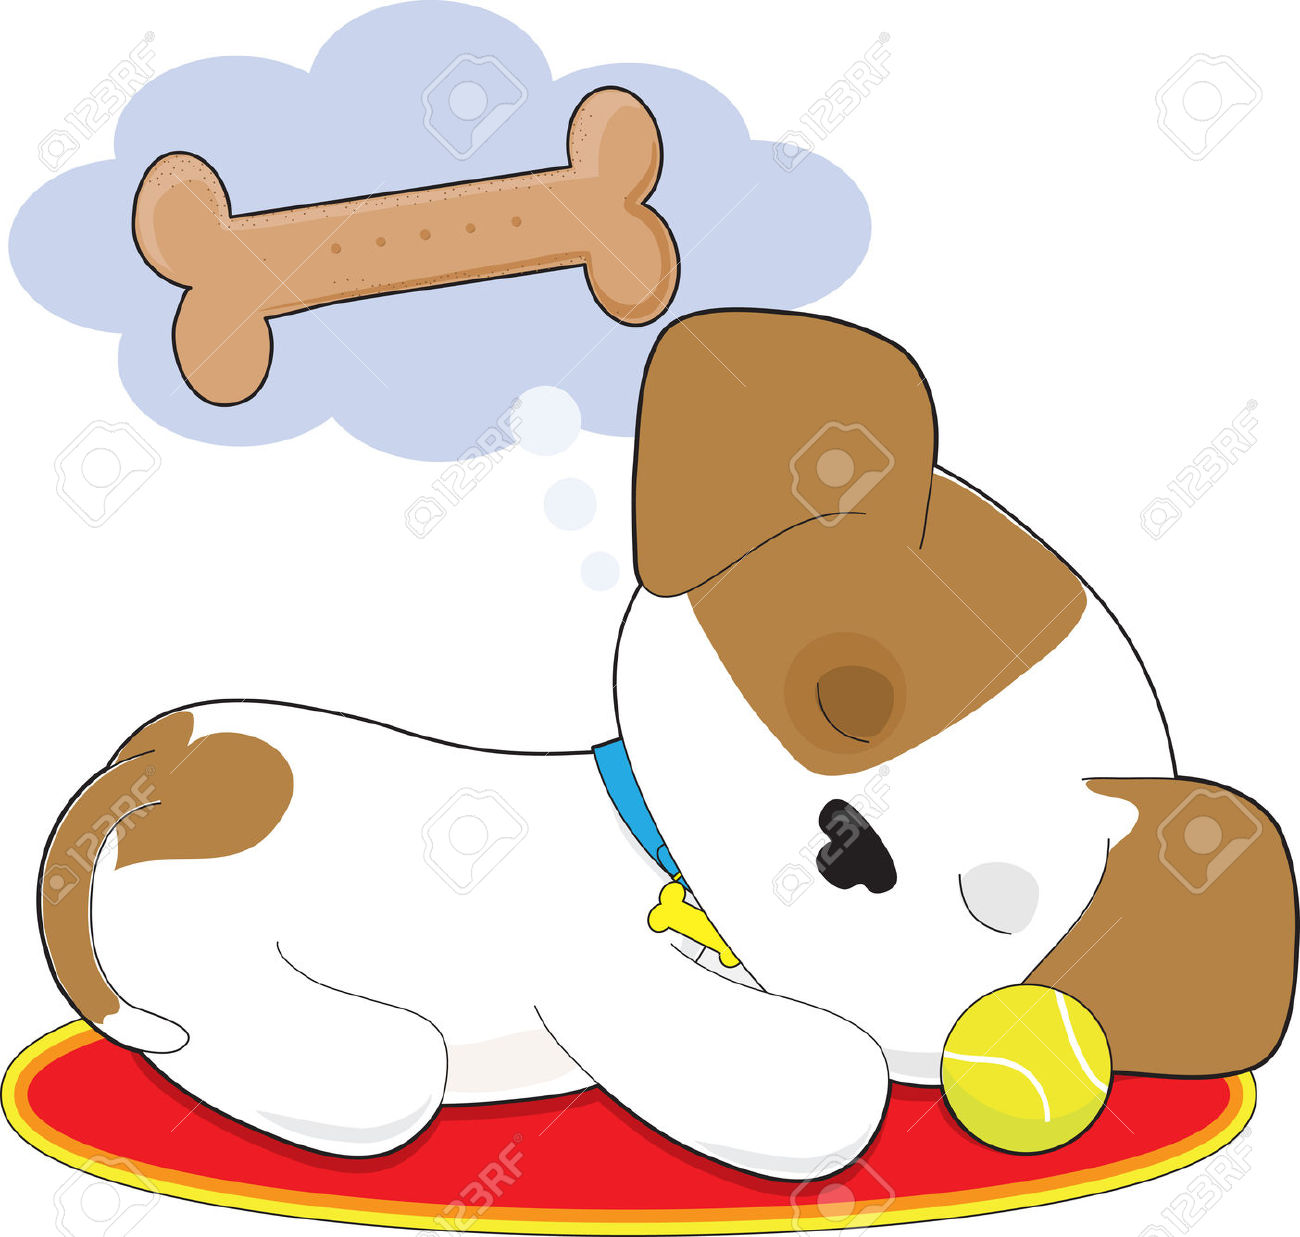 hight resolution of 1300x1237 biscuit the dog clipart